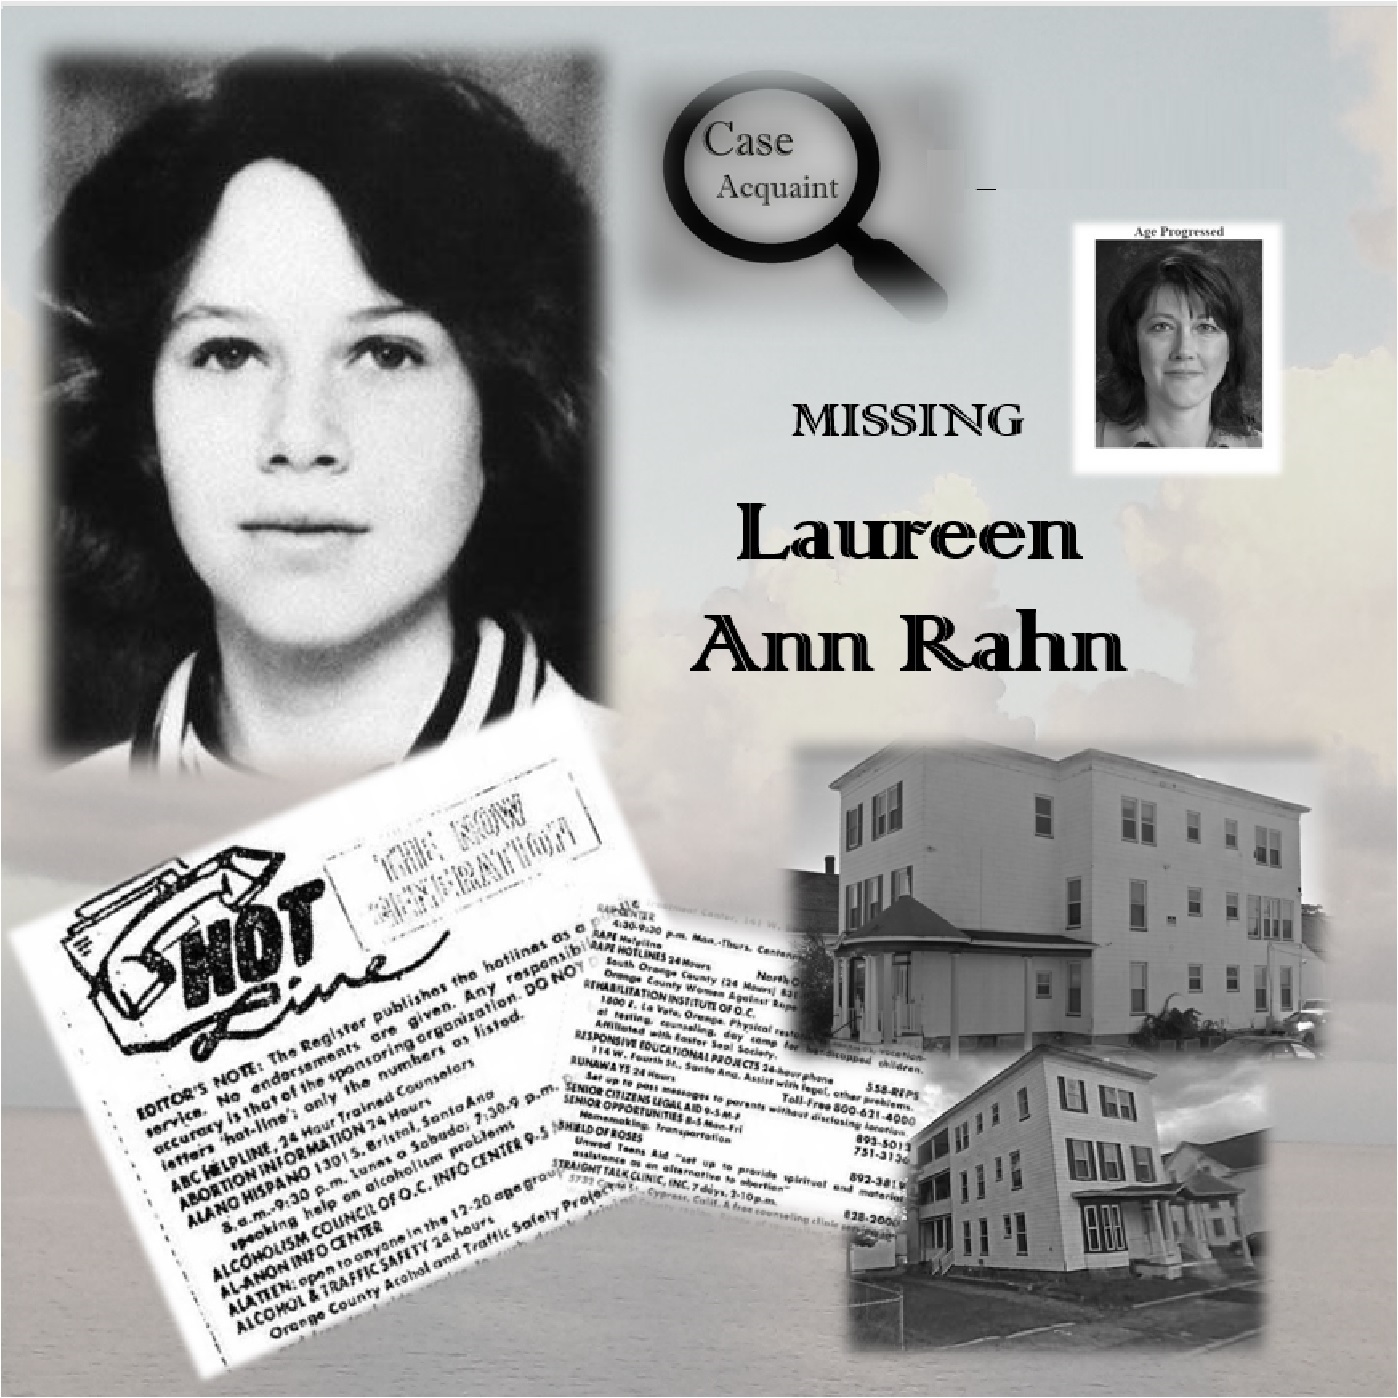 Laureen Ann Rahn